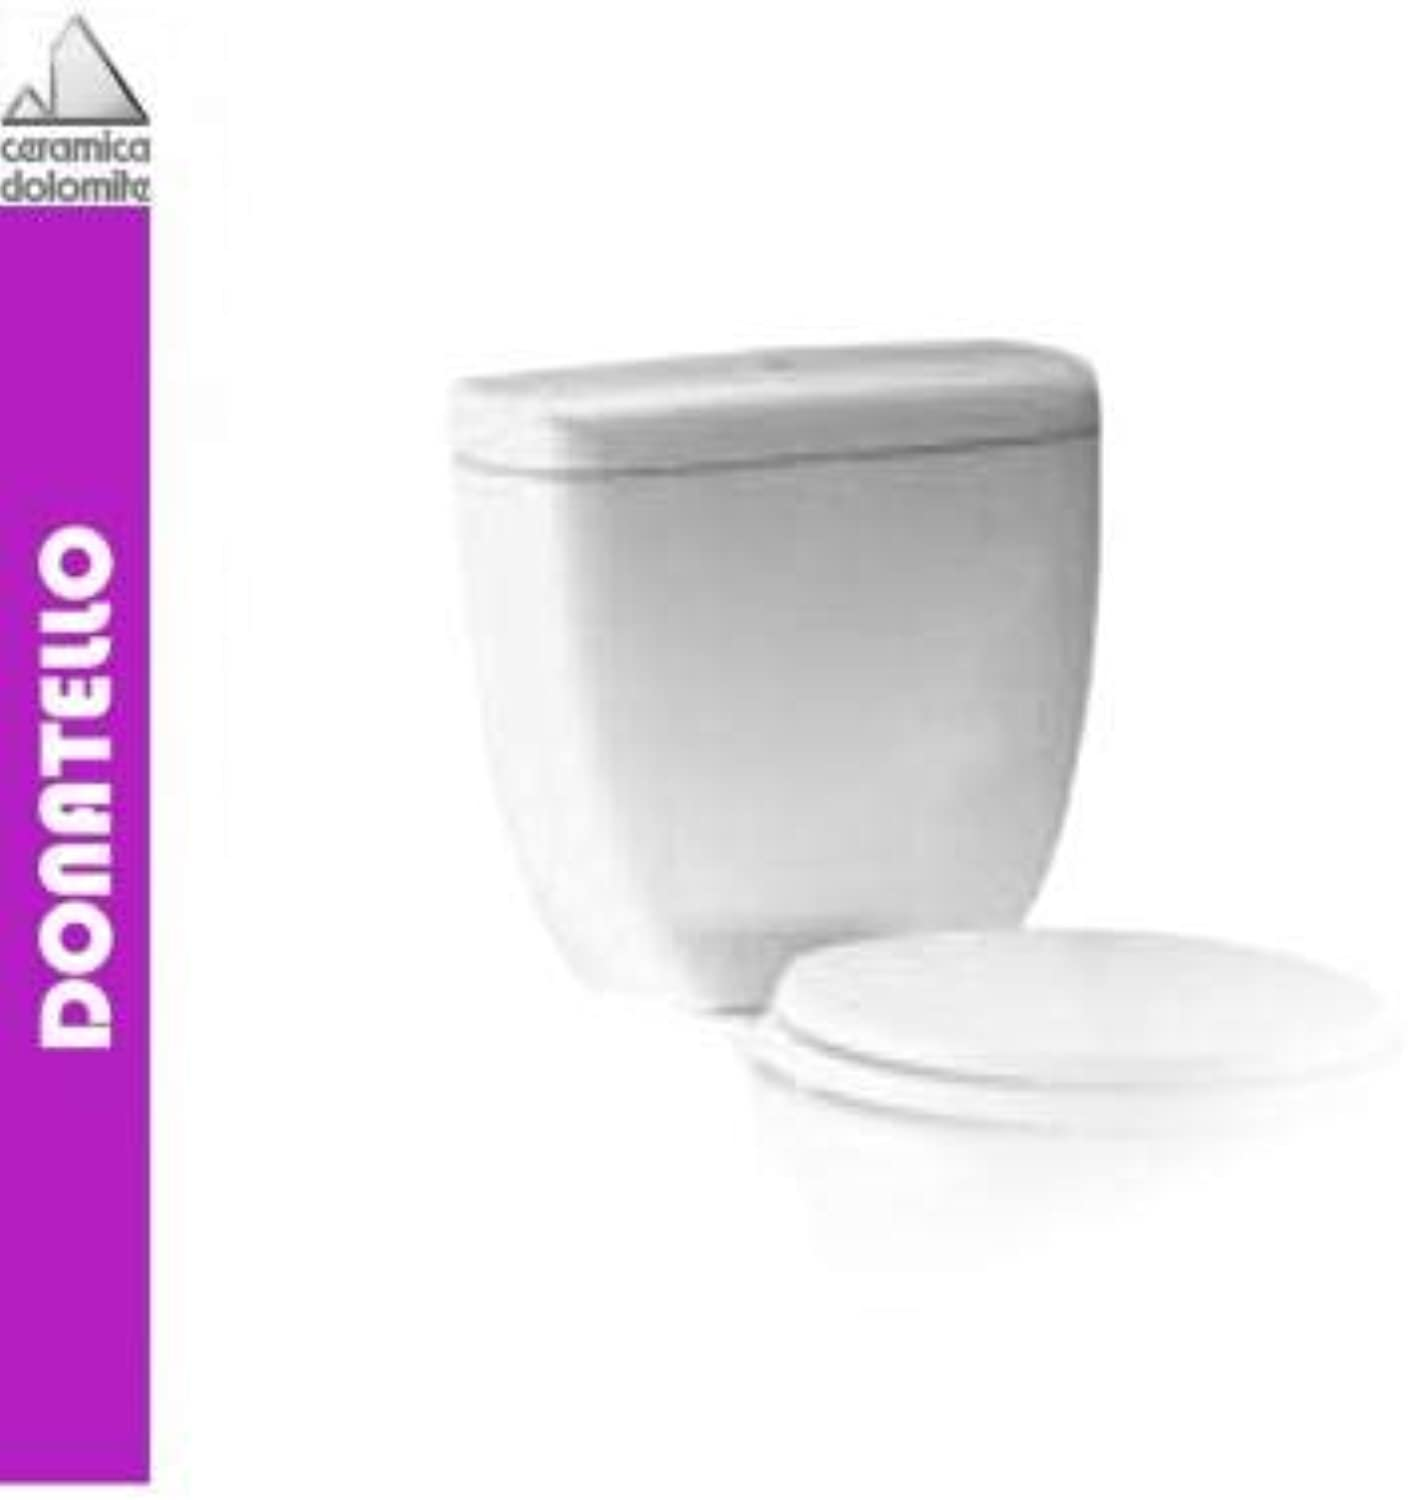 Ceramica Dolomite - Dolomite Collection Donatello, J508701 Cistern Close-coupled wc, high Inlet - White, in Stock